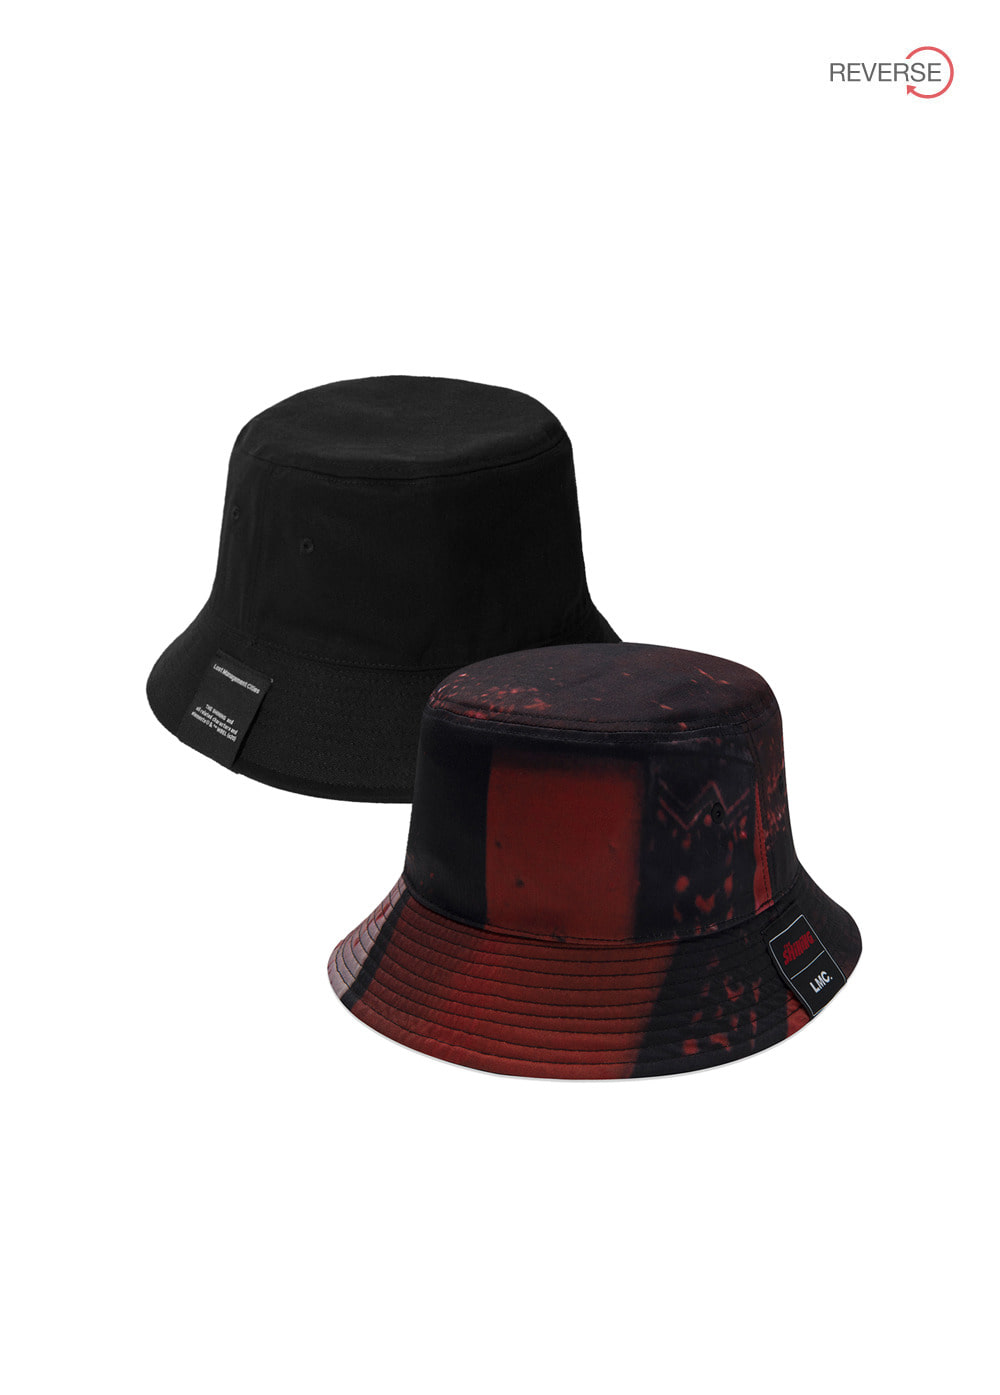 LMC│THE SHINING REVERSIBLE BUCKET HAT black